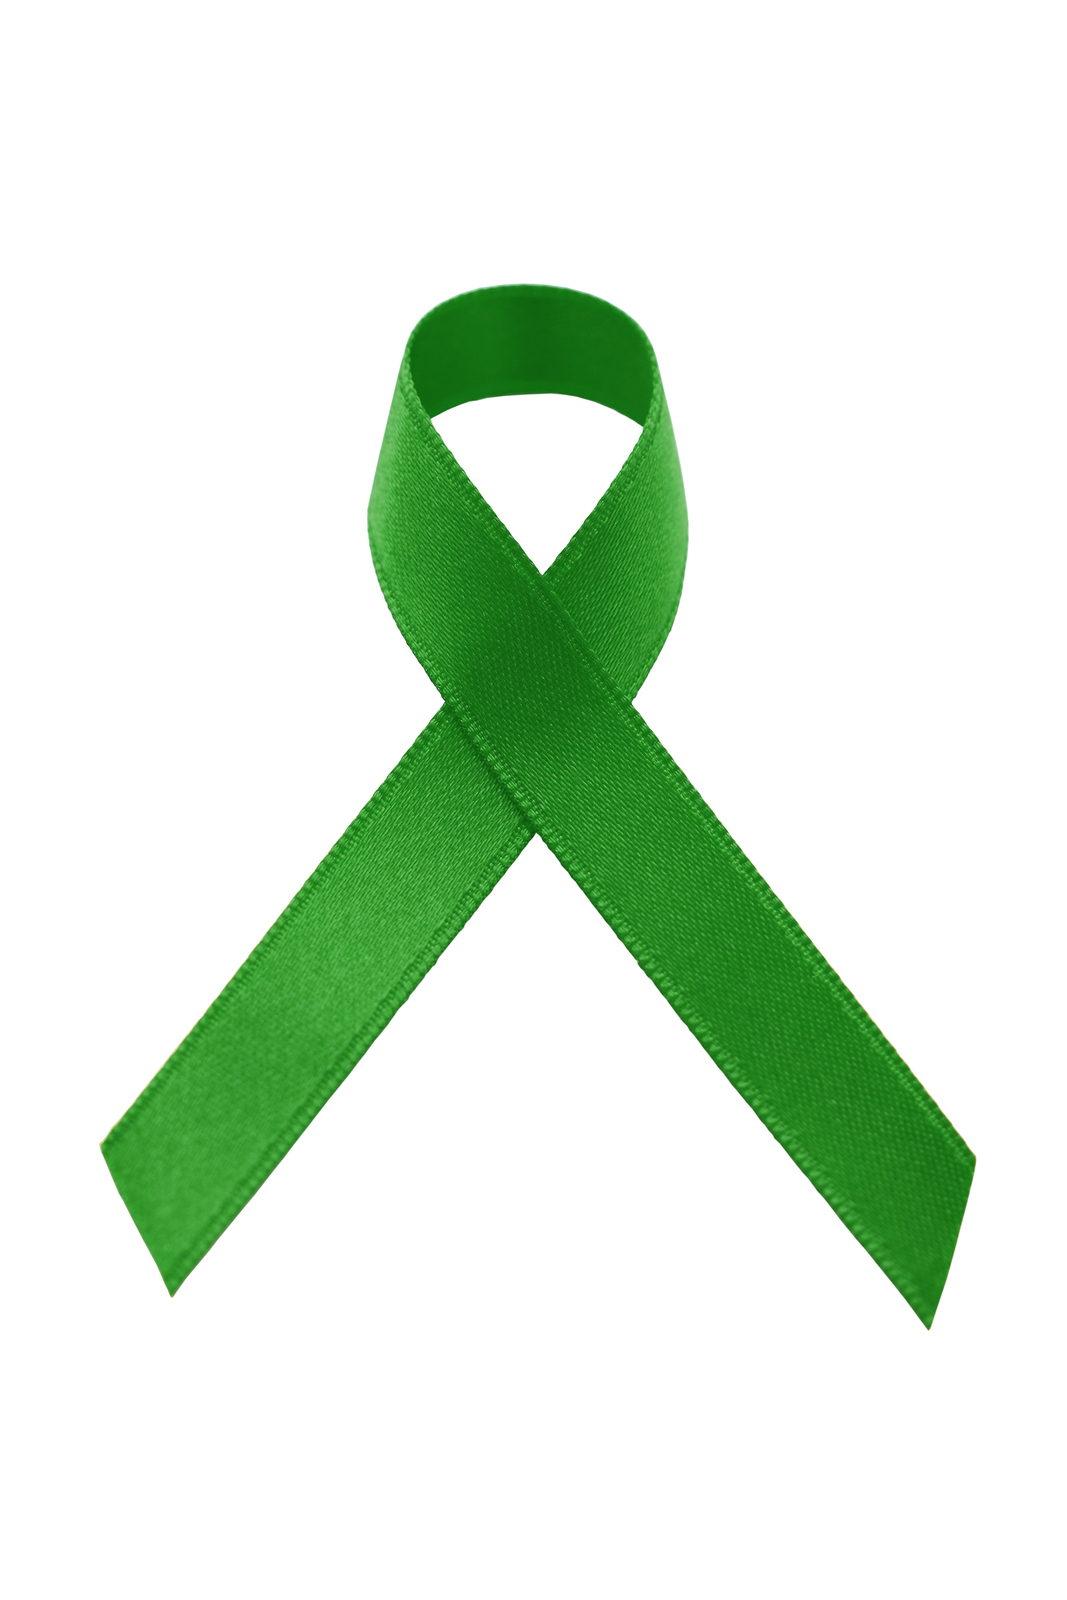 Tomorrow, Remember 26 Innocent Lives Lost with Green ...